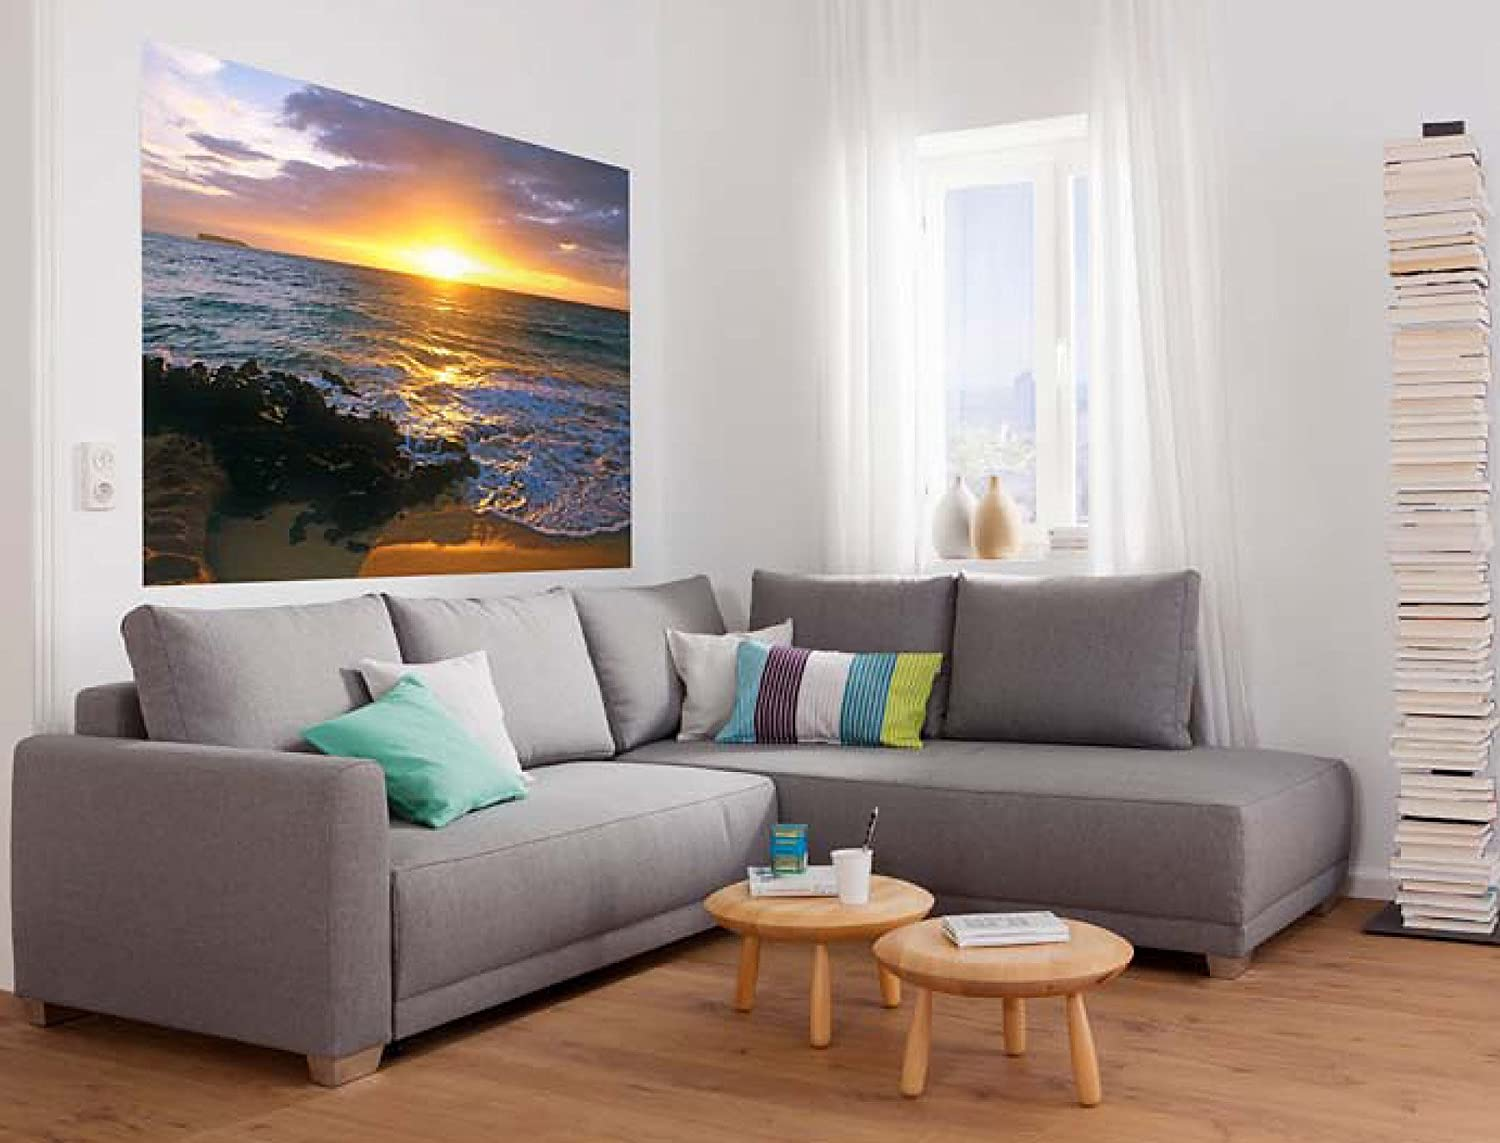 Komar 1607 Single Panel Wall Mural Makena Beach 72inch by 50